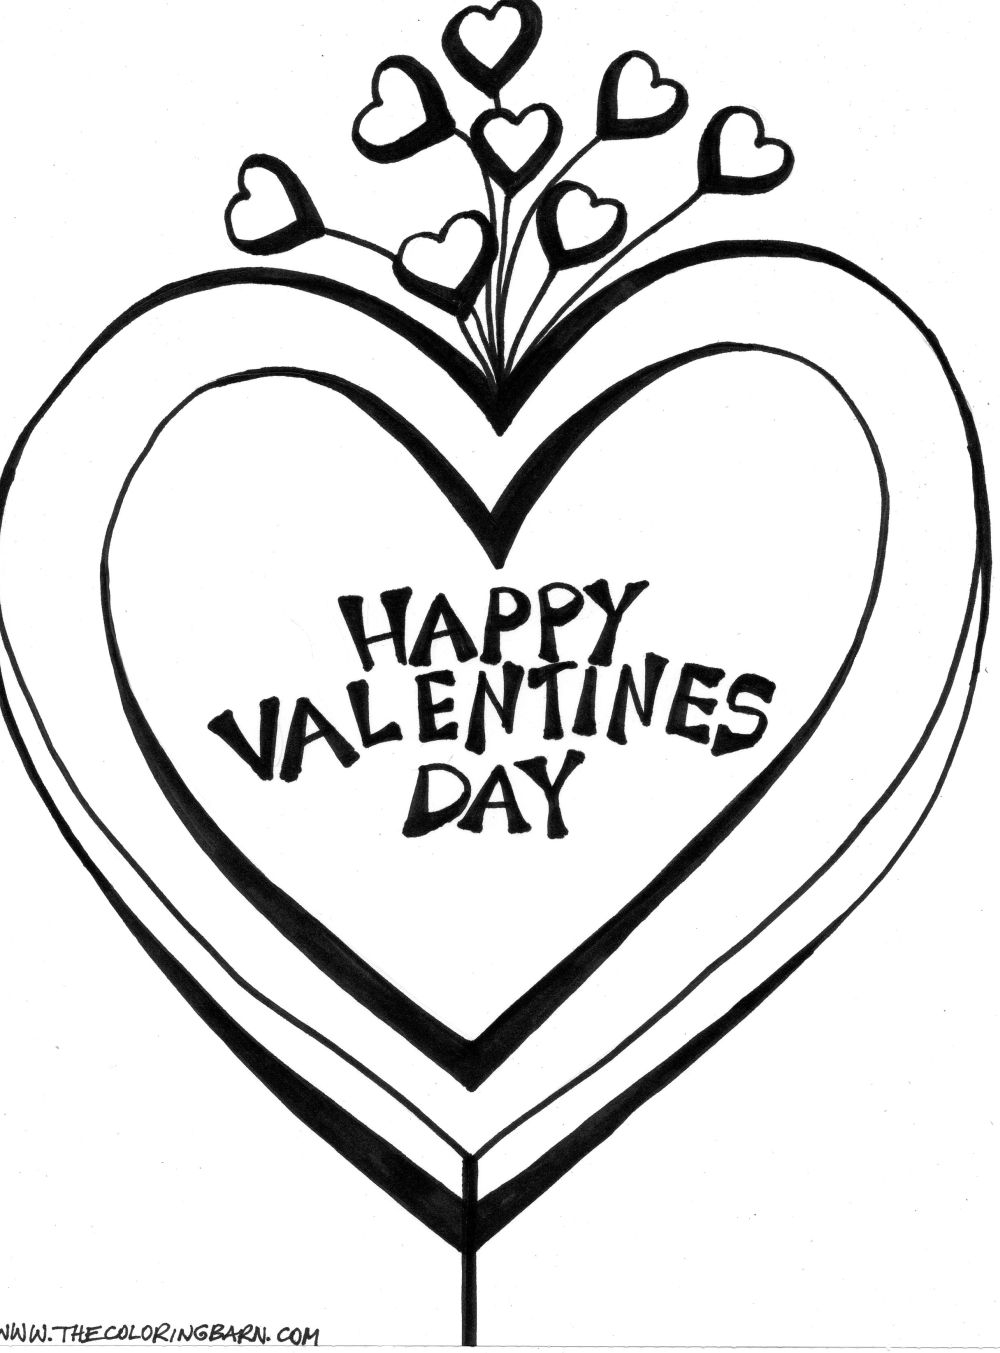 Valentines Day Coloring Pages Collection Of Valentines Coloring Pages Printable Remarkable Valentine to Collection